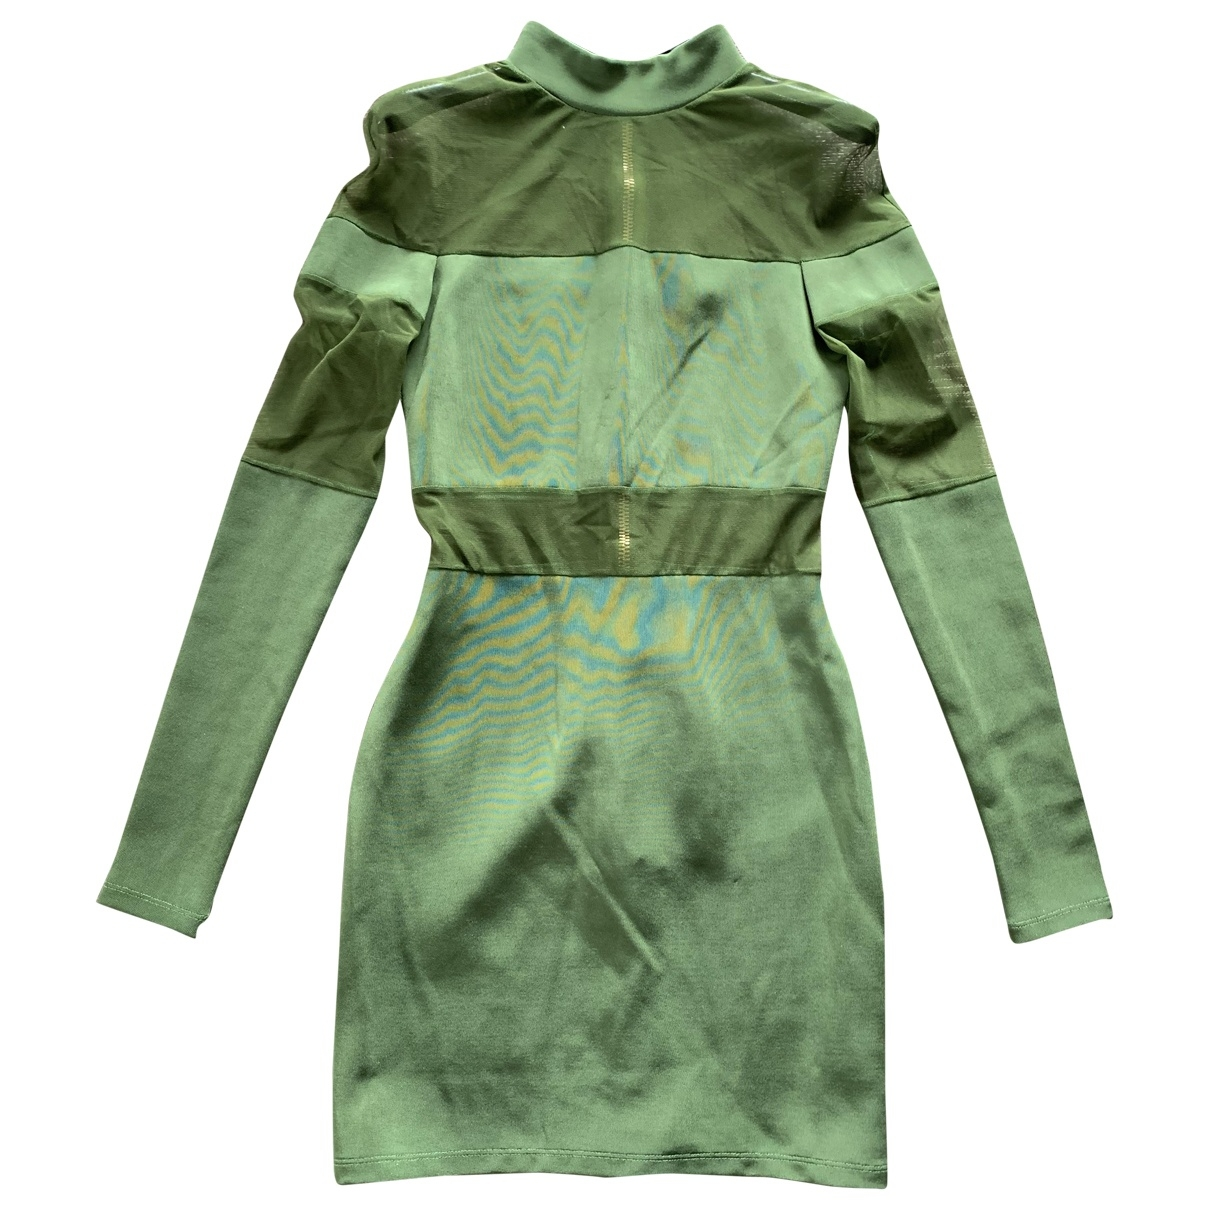 Balmain \N Green Cotton - elasthane dress for Women 36 FR